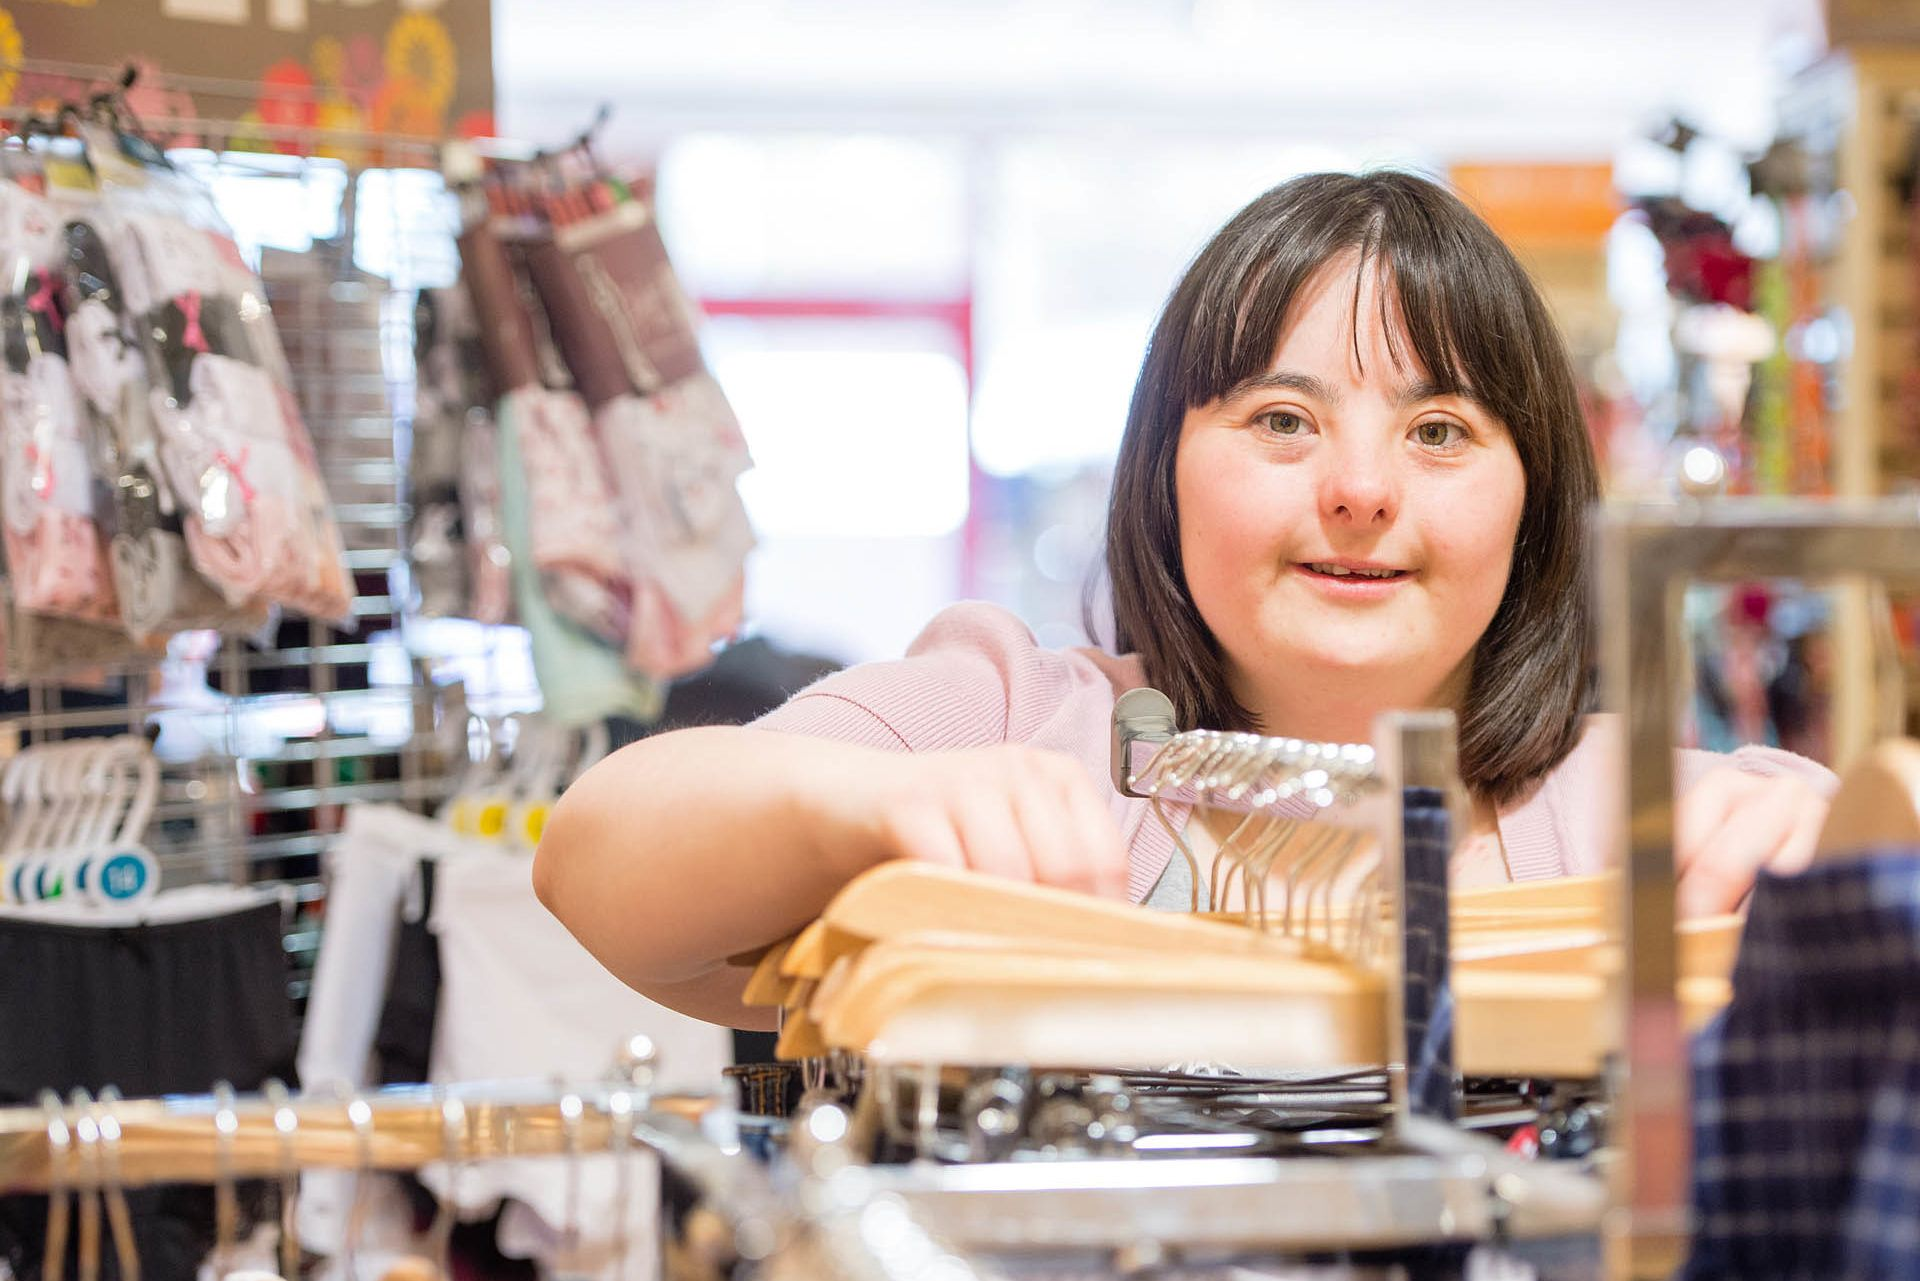 Woman with a learning disability sorting out clothes in a shop